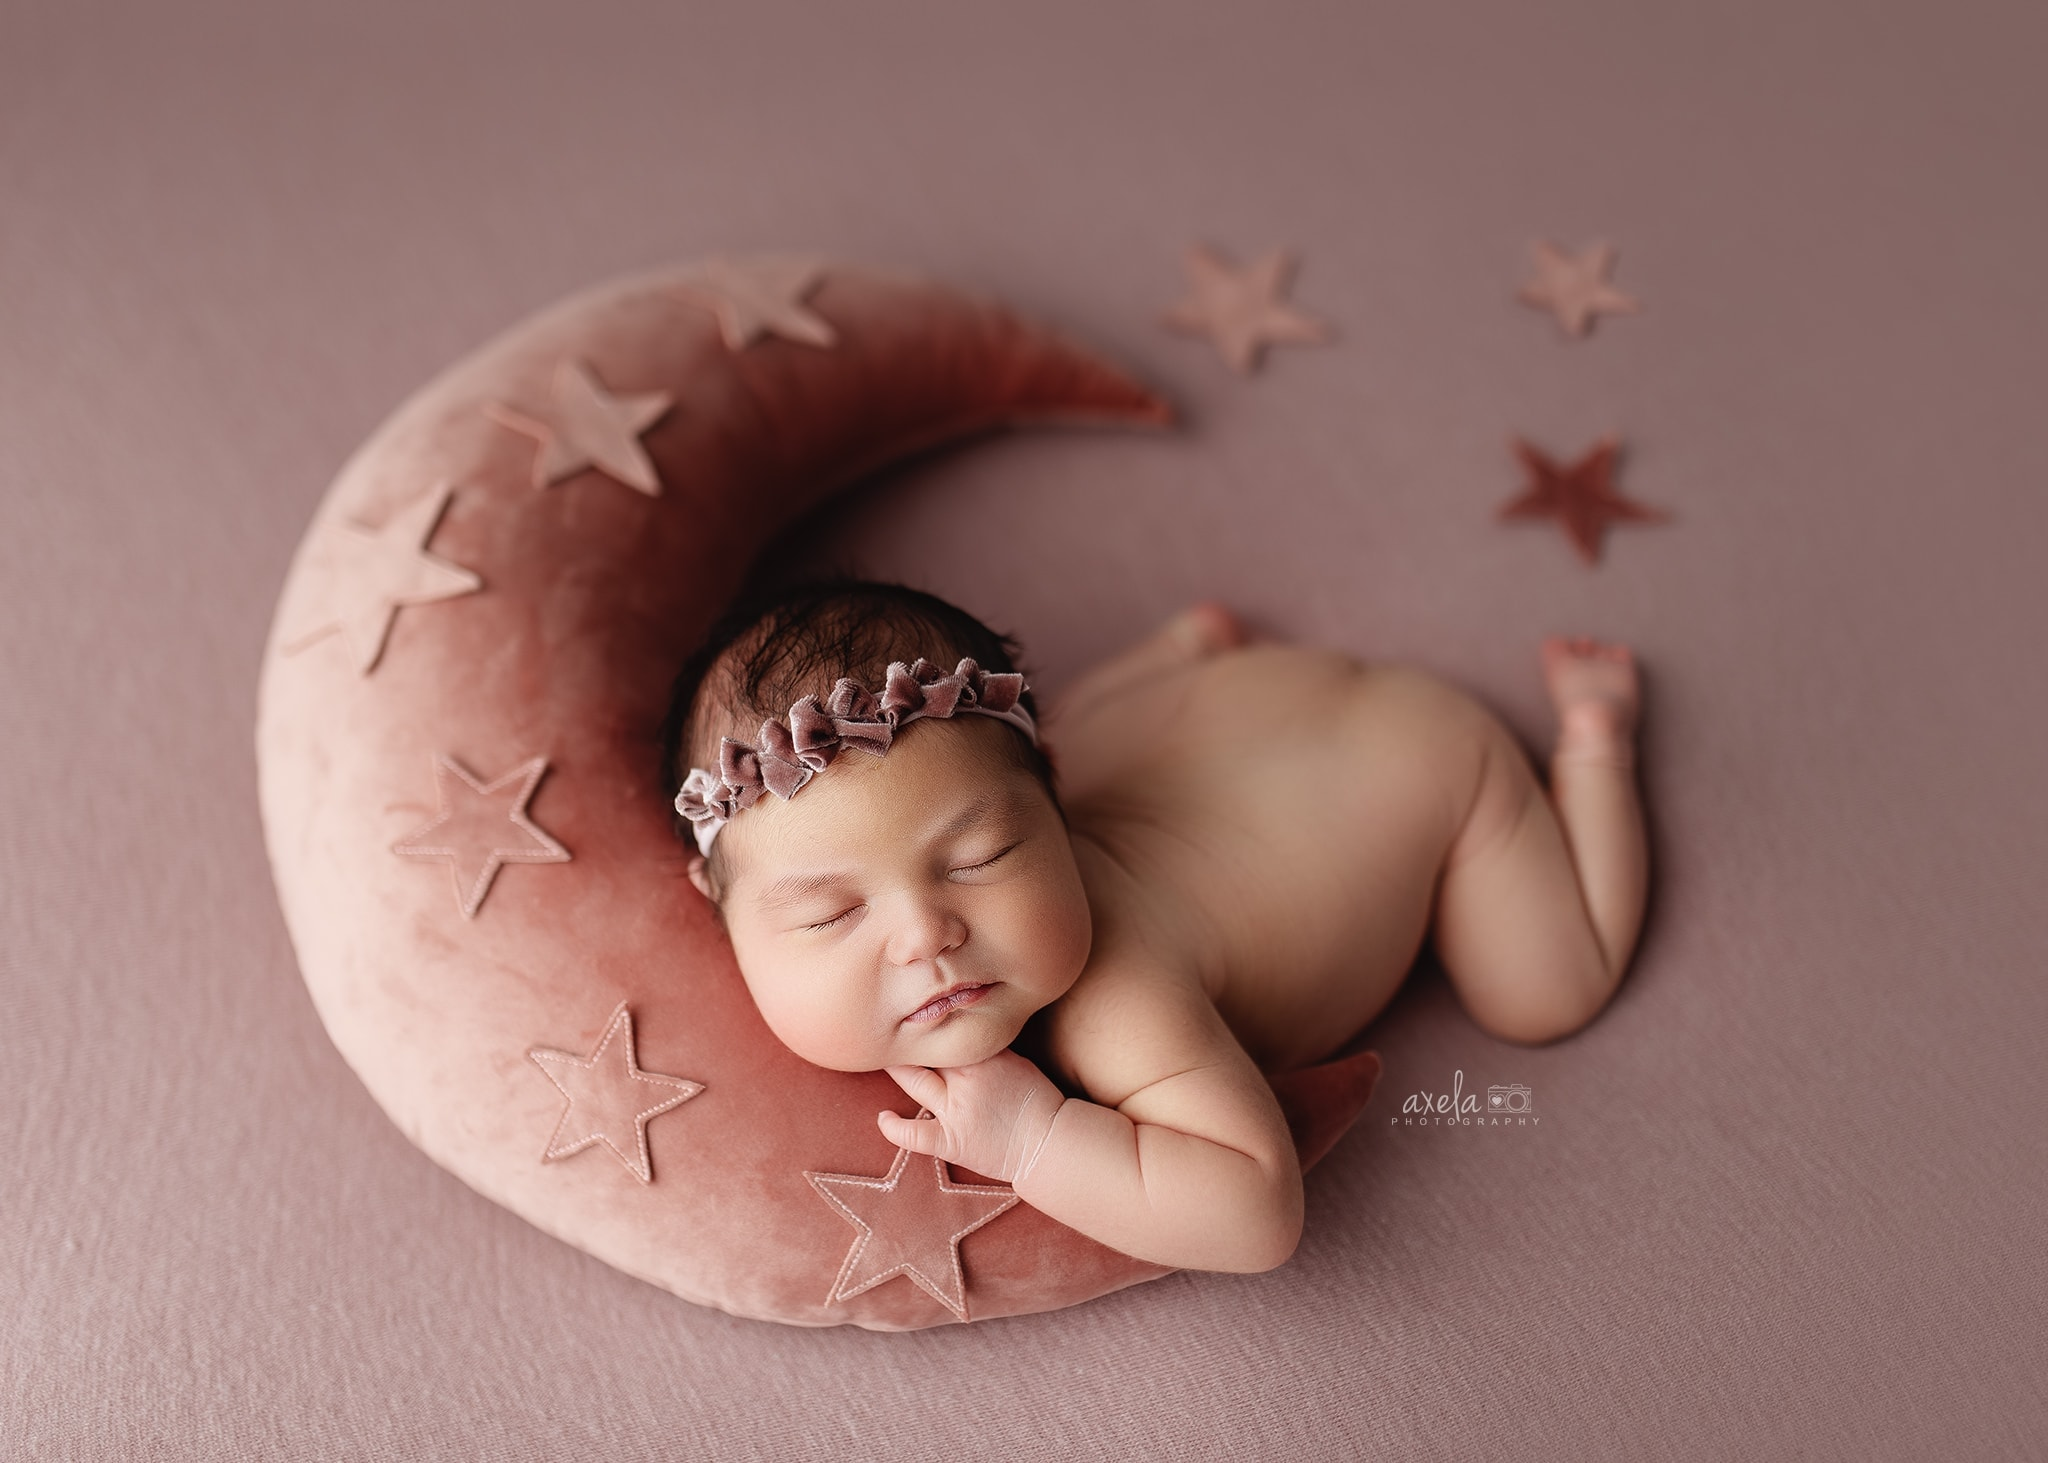 Axela Photography Newborn Nelly Props